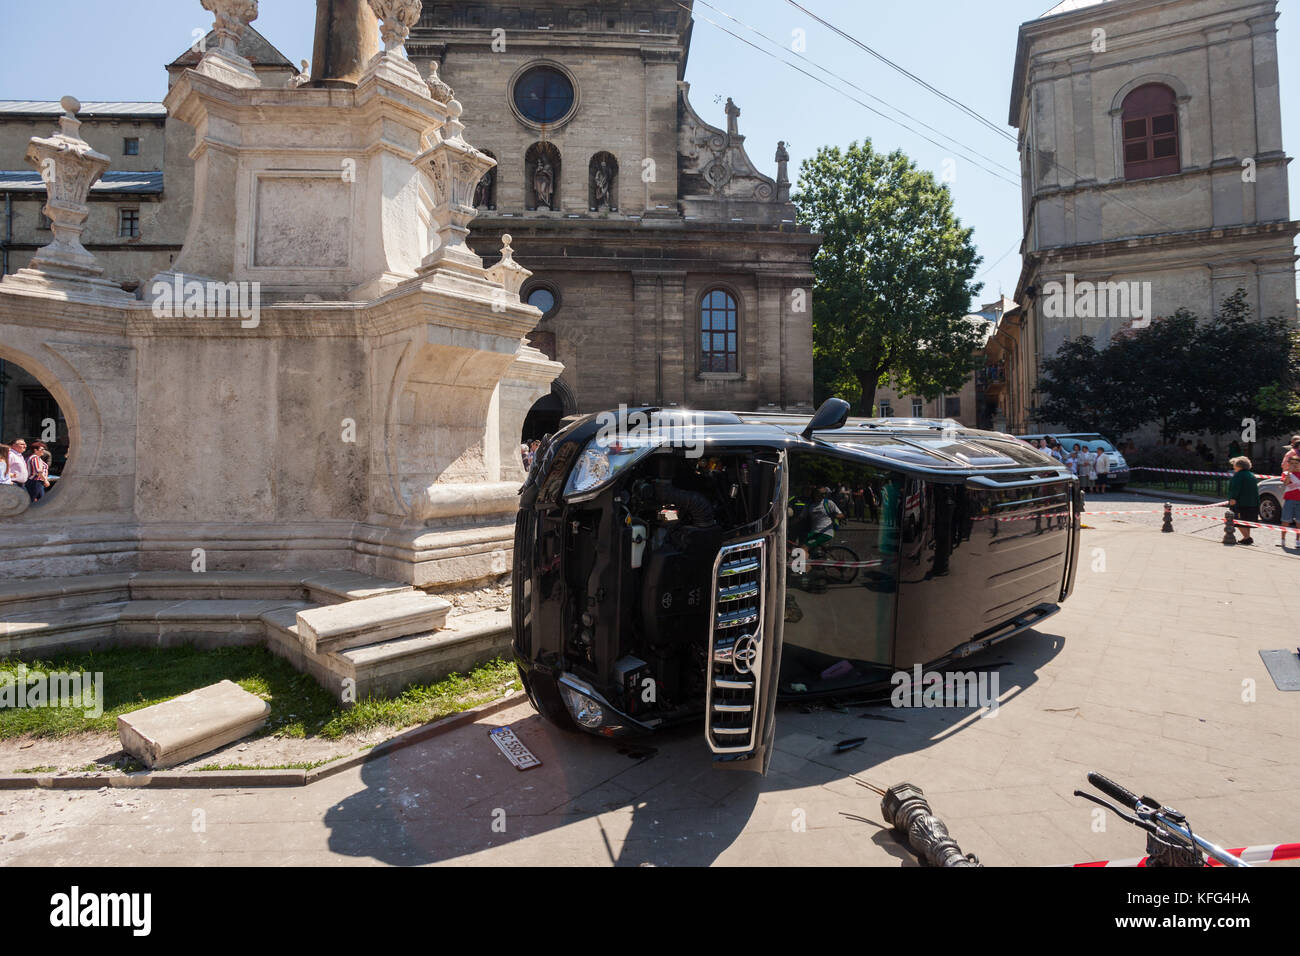 LVIV, UKRAINE - JUNE 18: The body of a pedestrian lays next to an overturned SUV on 18 June 2017 in Lviv, Ukraine. - Stock Image